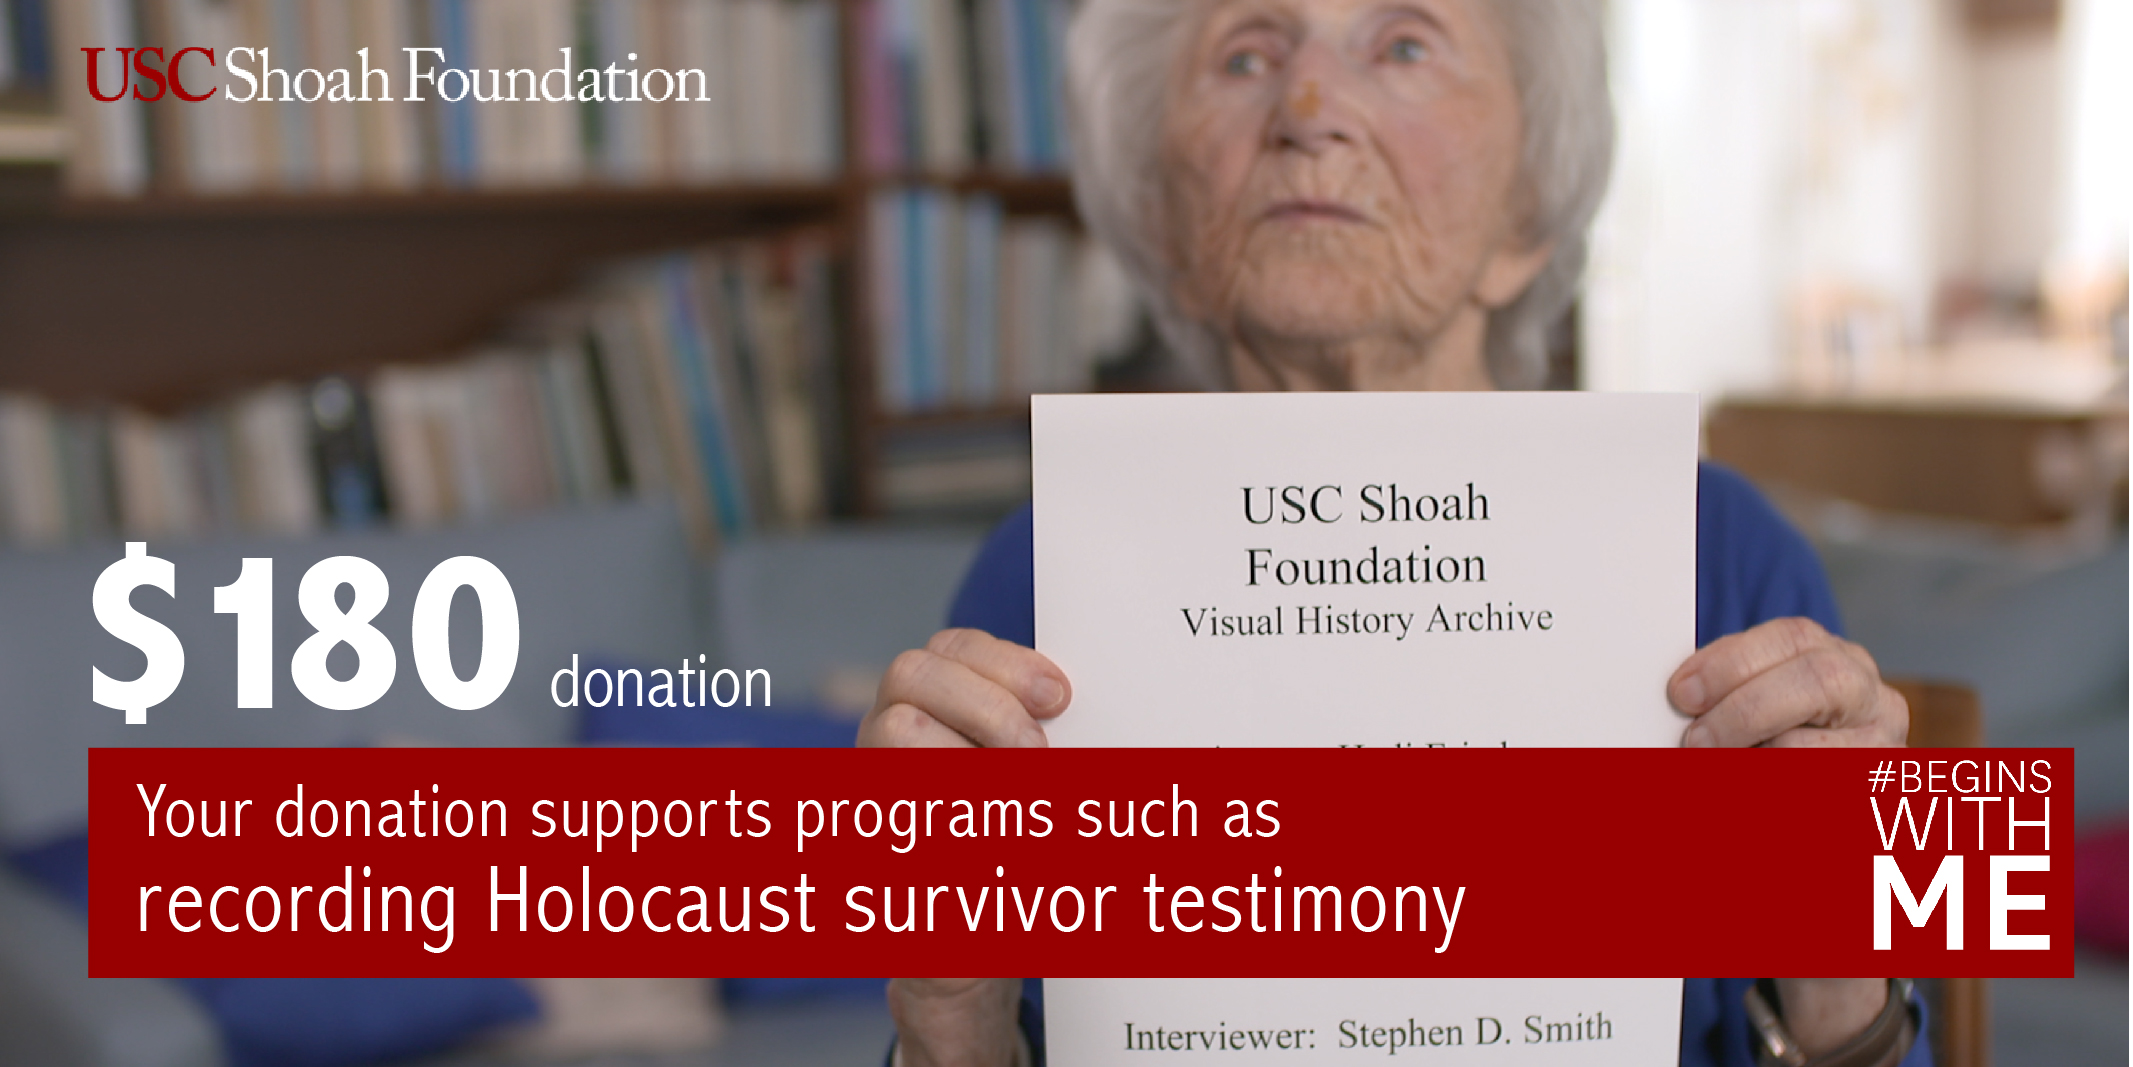 Your $180 donation can help fund our effort to record and preserve survivor testimony